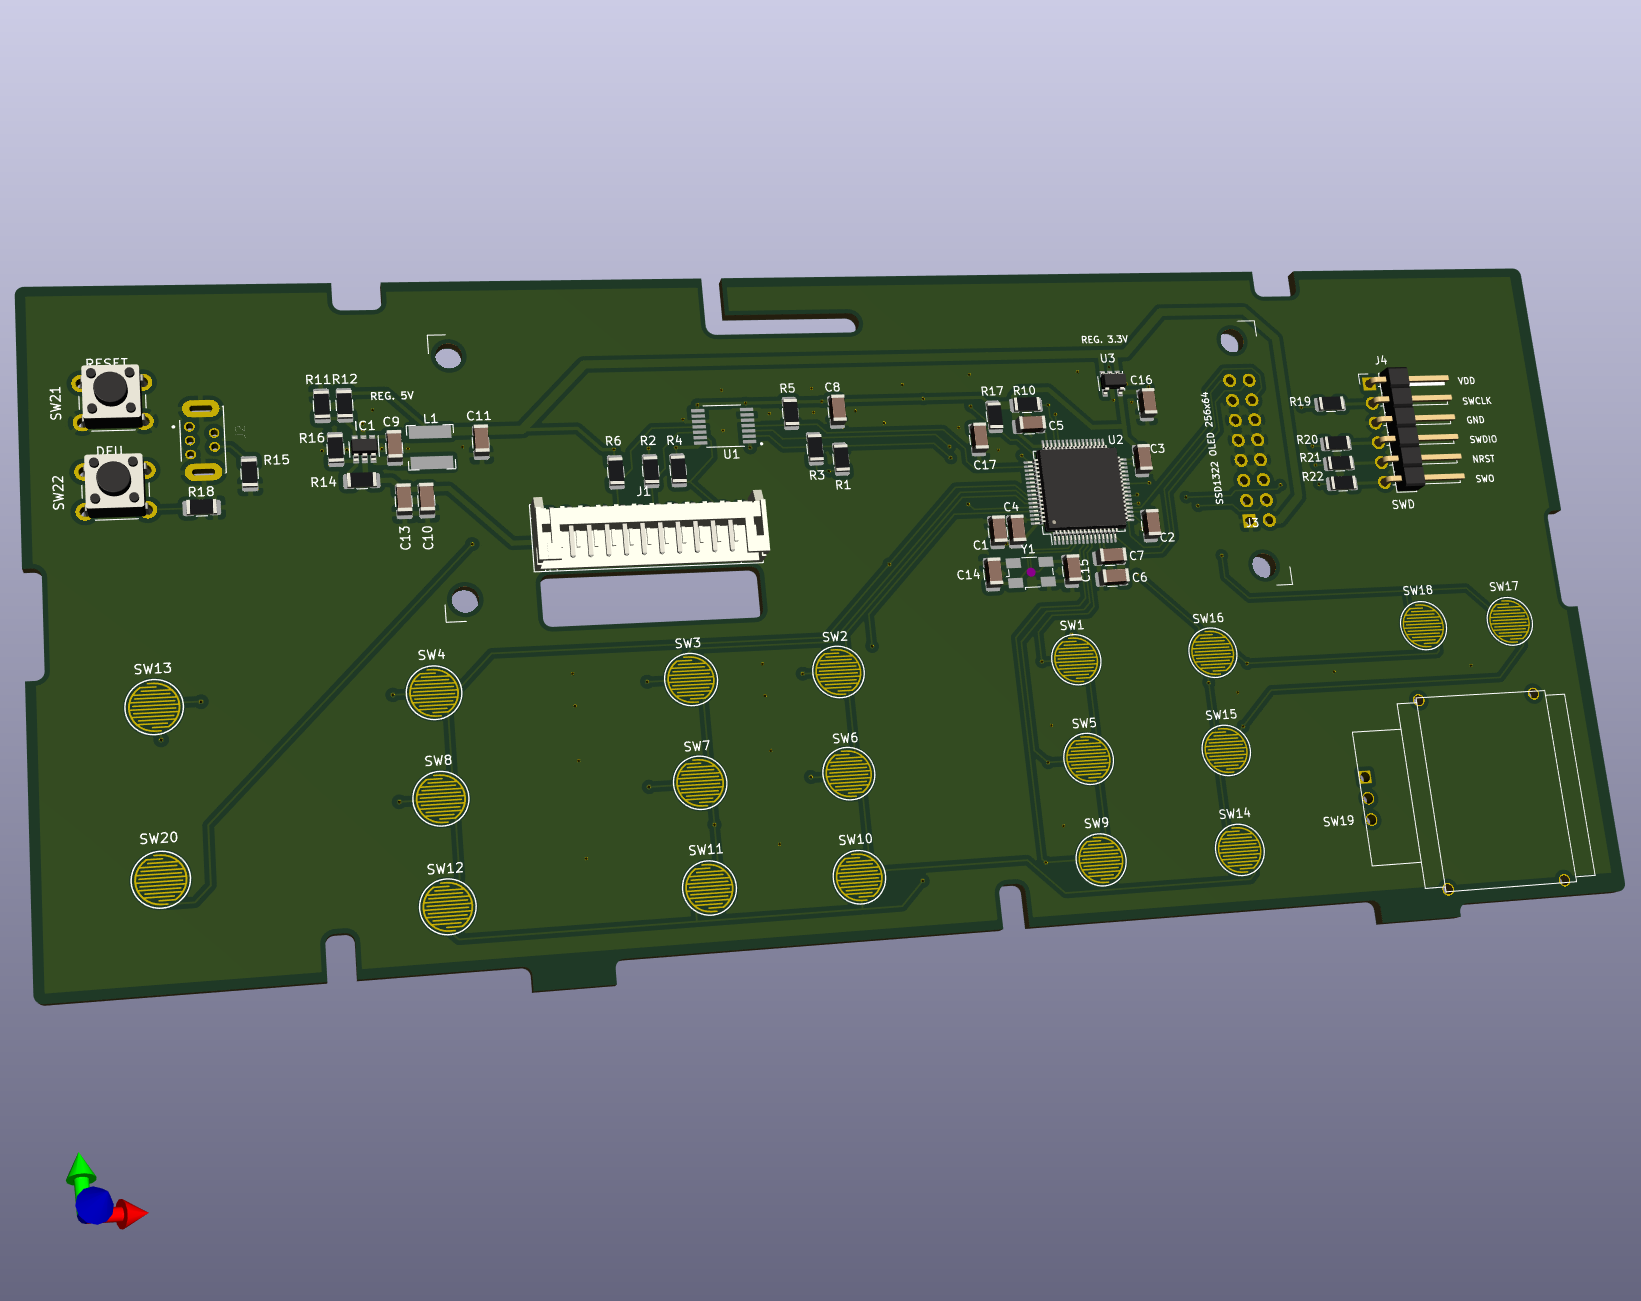 3D view of the PCB for a replacement front panel for the HP 34970A